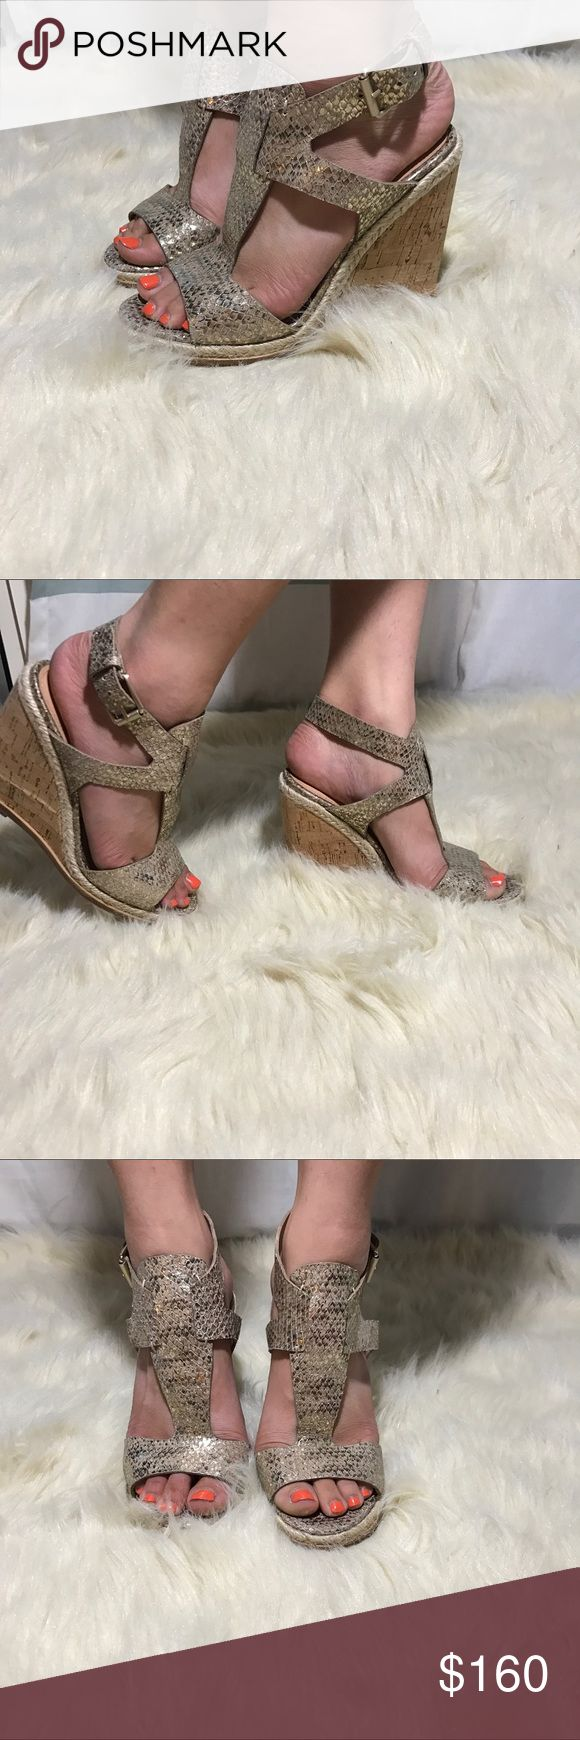 """⚡️Sigerson Morrison """"valina"""" metallic taupe wedges ✨BNWOB!✨   🛍2+ BUNDLE = 💰SAVINGS!  ‼️= PRICE FIRM!   💯BRAND AUTHENTIC   ✈️ SUPER FAST SHIPPING!   🖲 USE THE OFFER BUTTON TO NEGOTIATE!  ❓ Questions? Just comment! ❤️  🤗❤✌🏼HAPPY POSHING!✌🏼❤️🤗 Sigerson Morrison Shoes Wedges"""